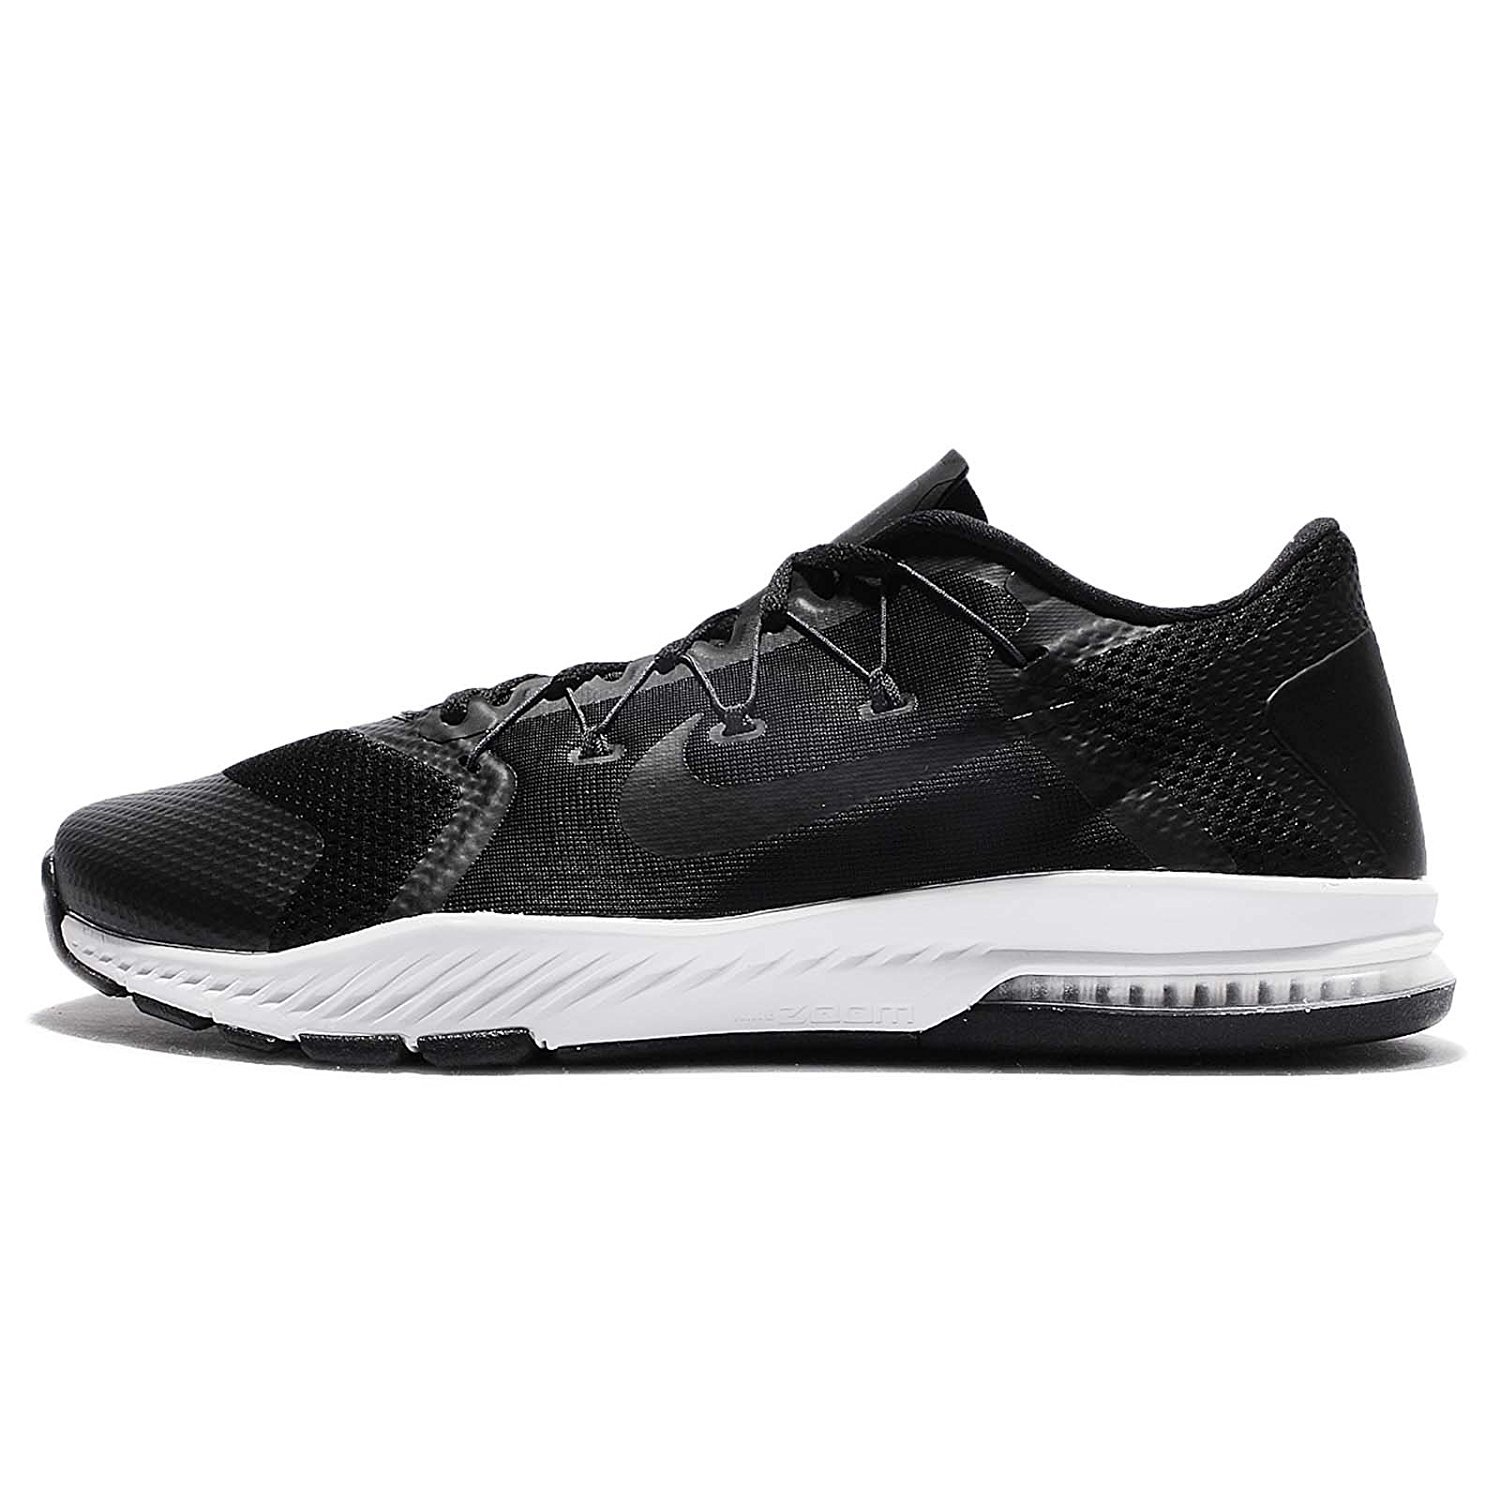 NIKE Air Zoom Train Complete Mens Running Trainers 882119 Sneakers Shoes B01HOXAIJI 8 M US|Black